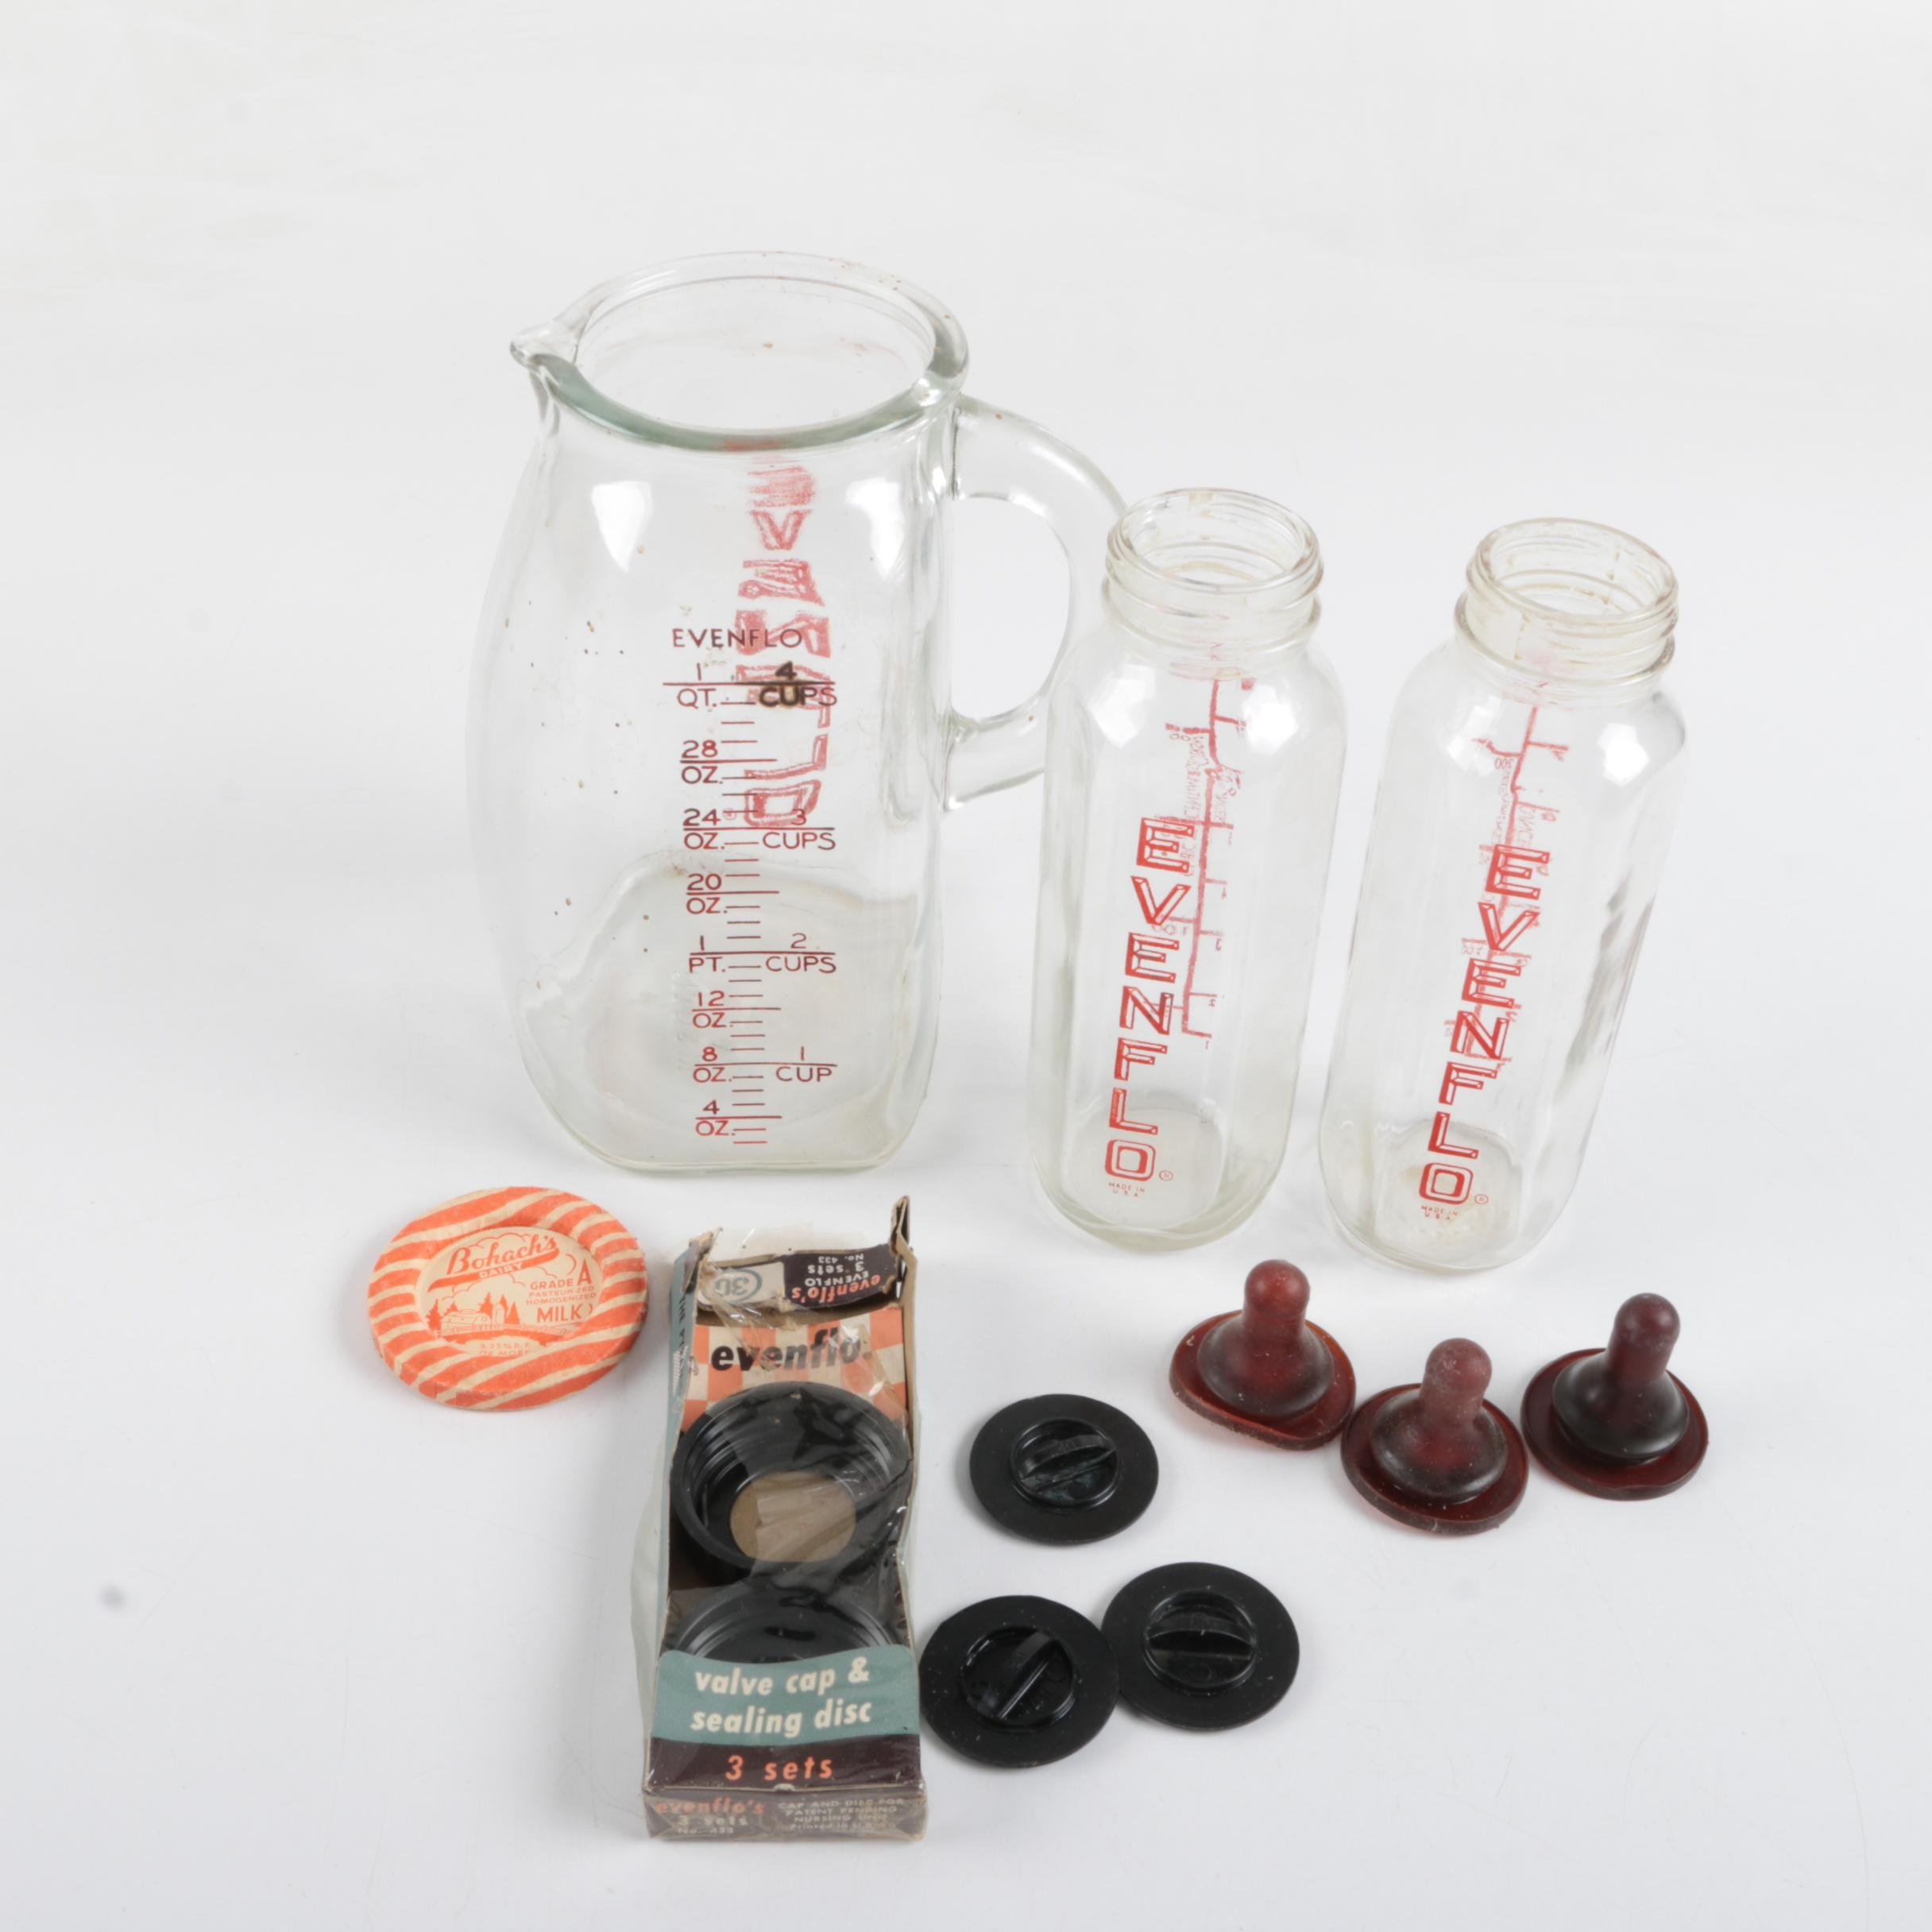 Vintage Evenflo Glass Baby Bottles, Measuring Pitcher and Accessories